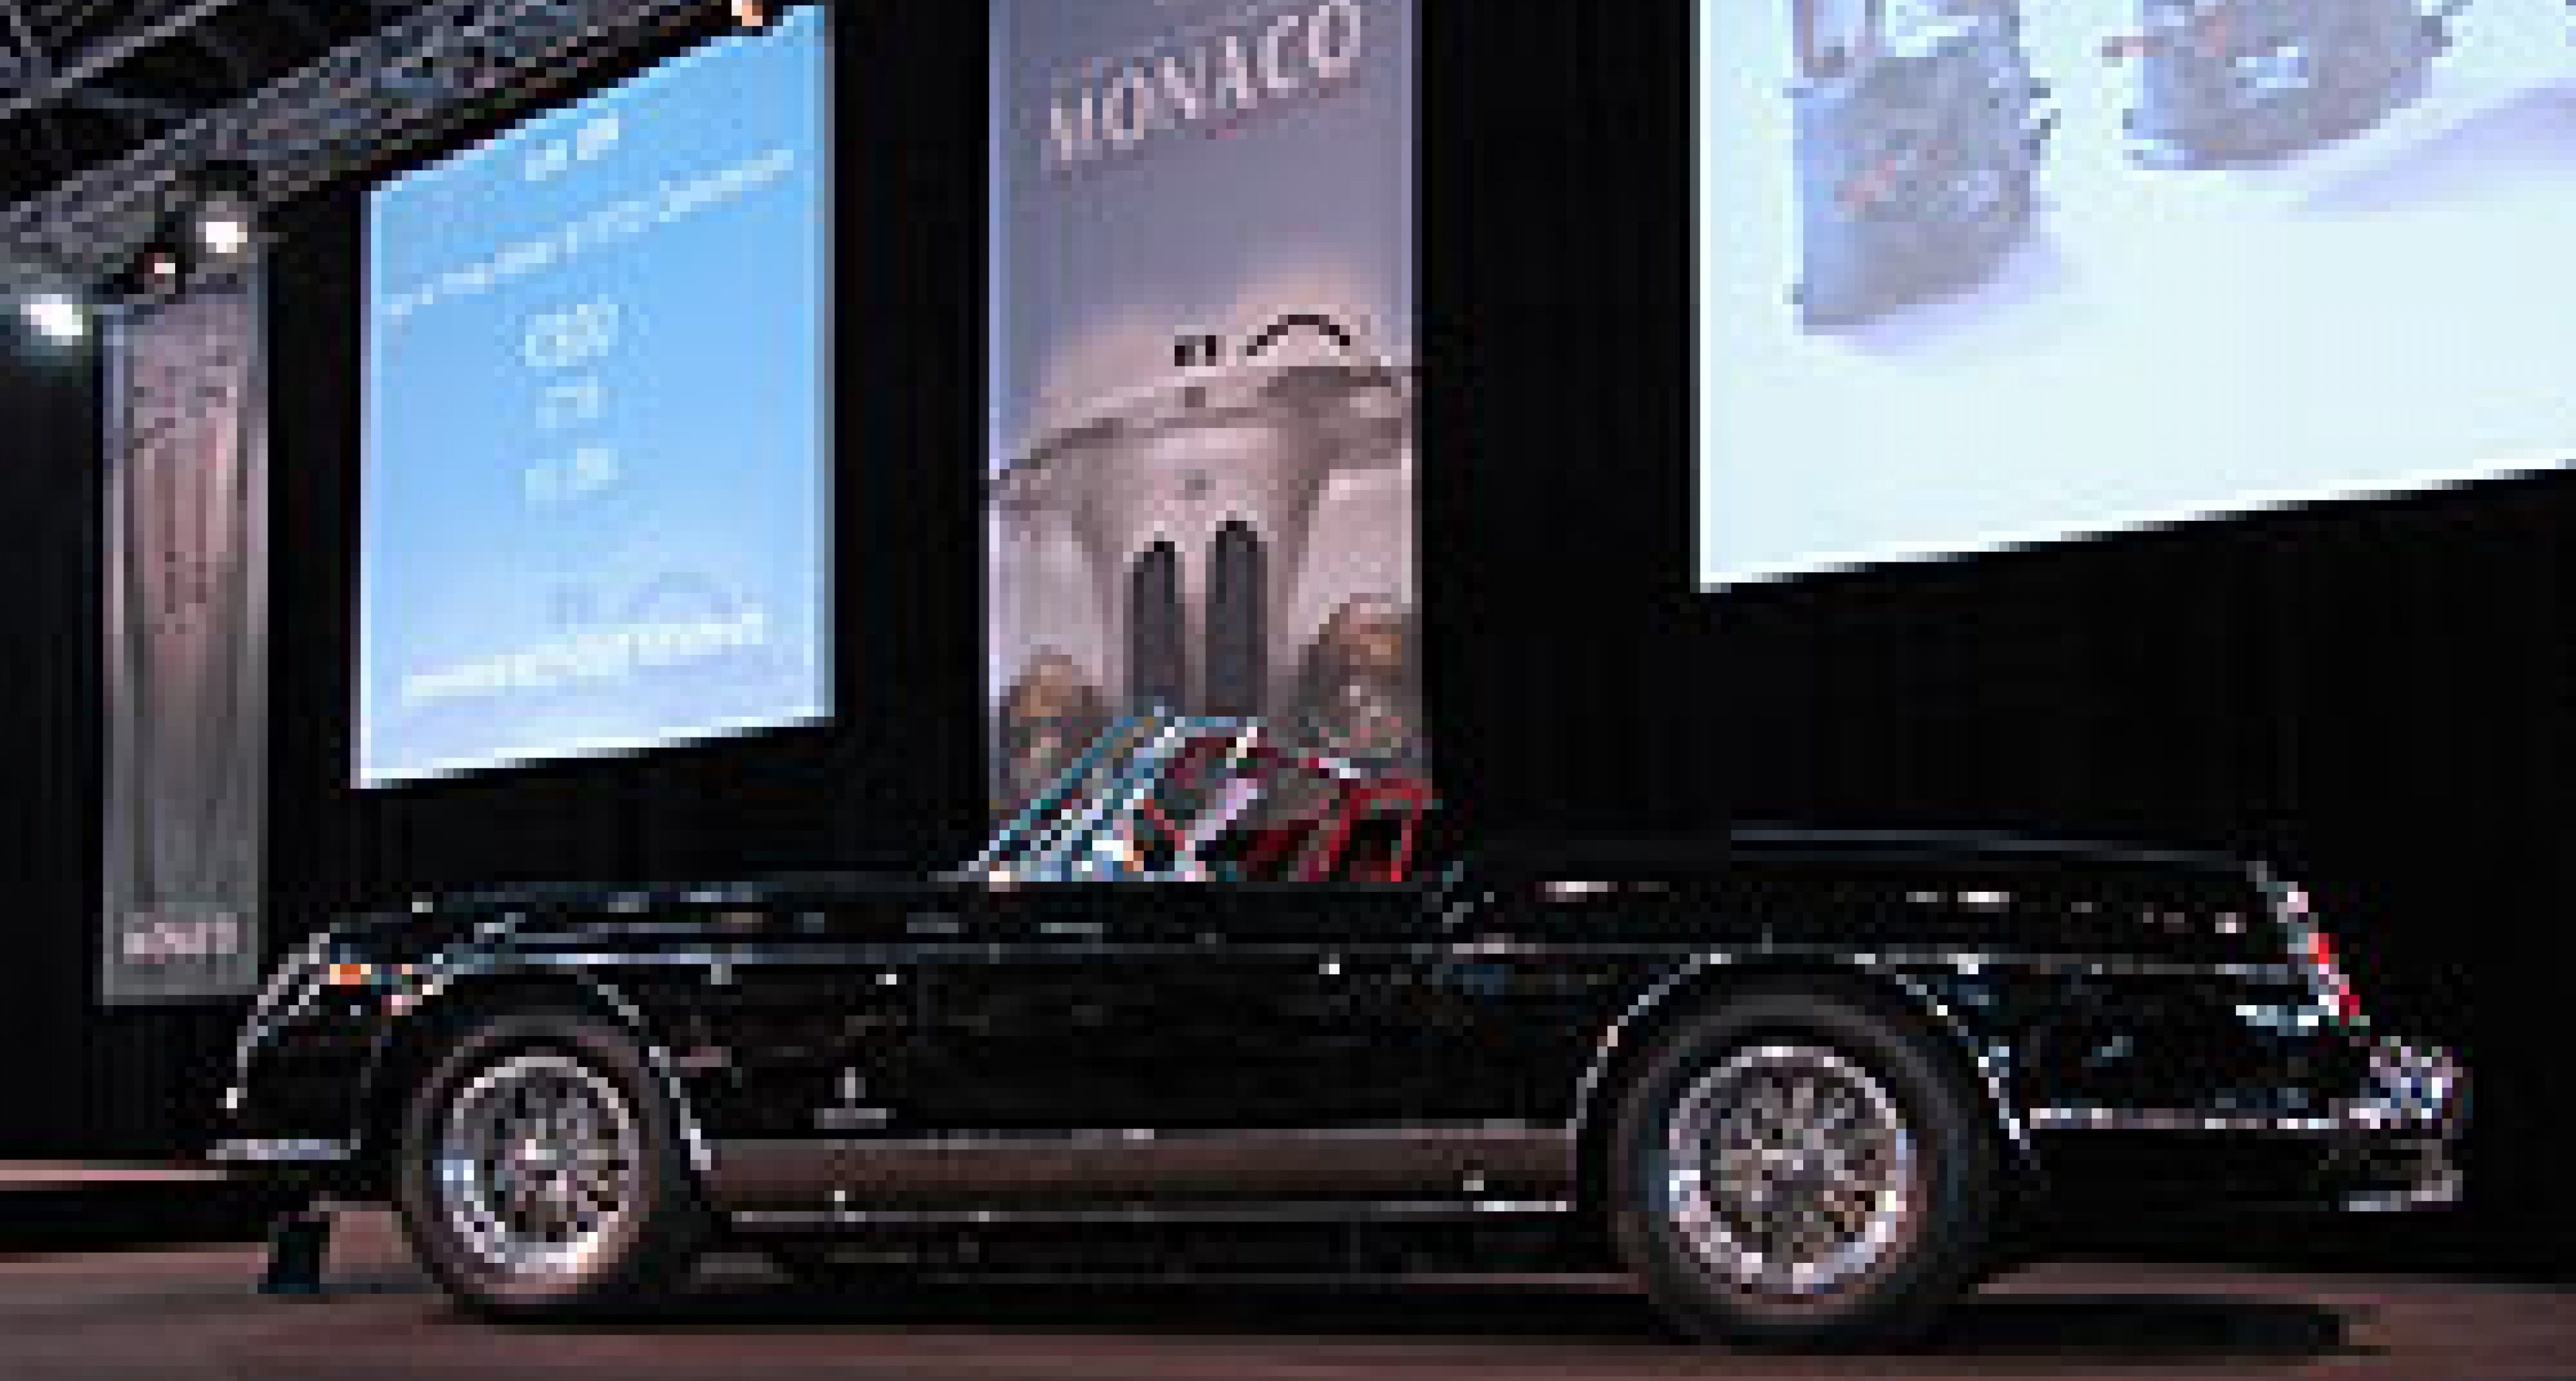 RM Auctions - 'Sporting Classics of Monaco' 1 May 2010 - Review